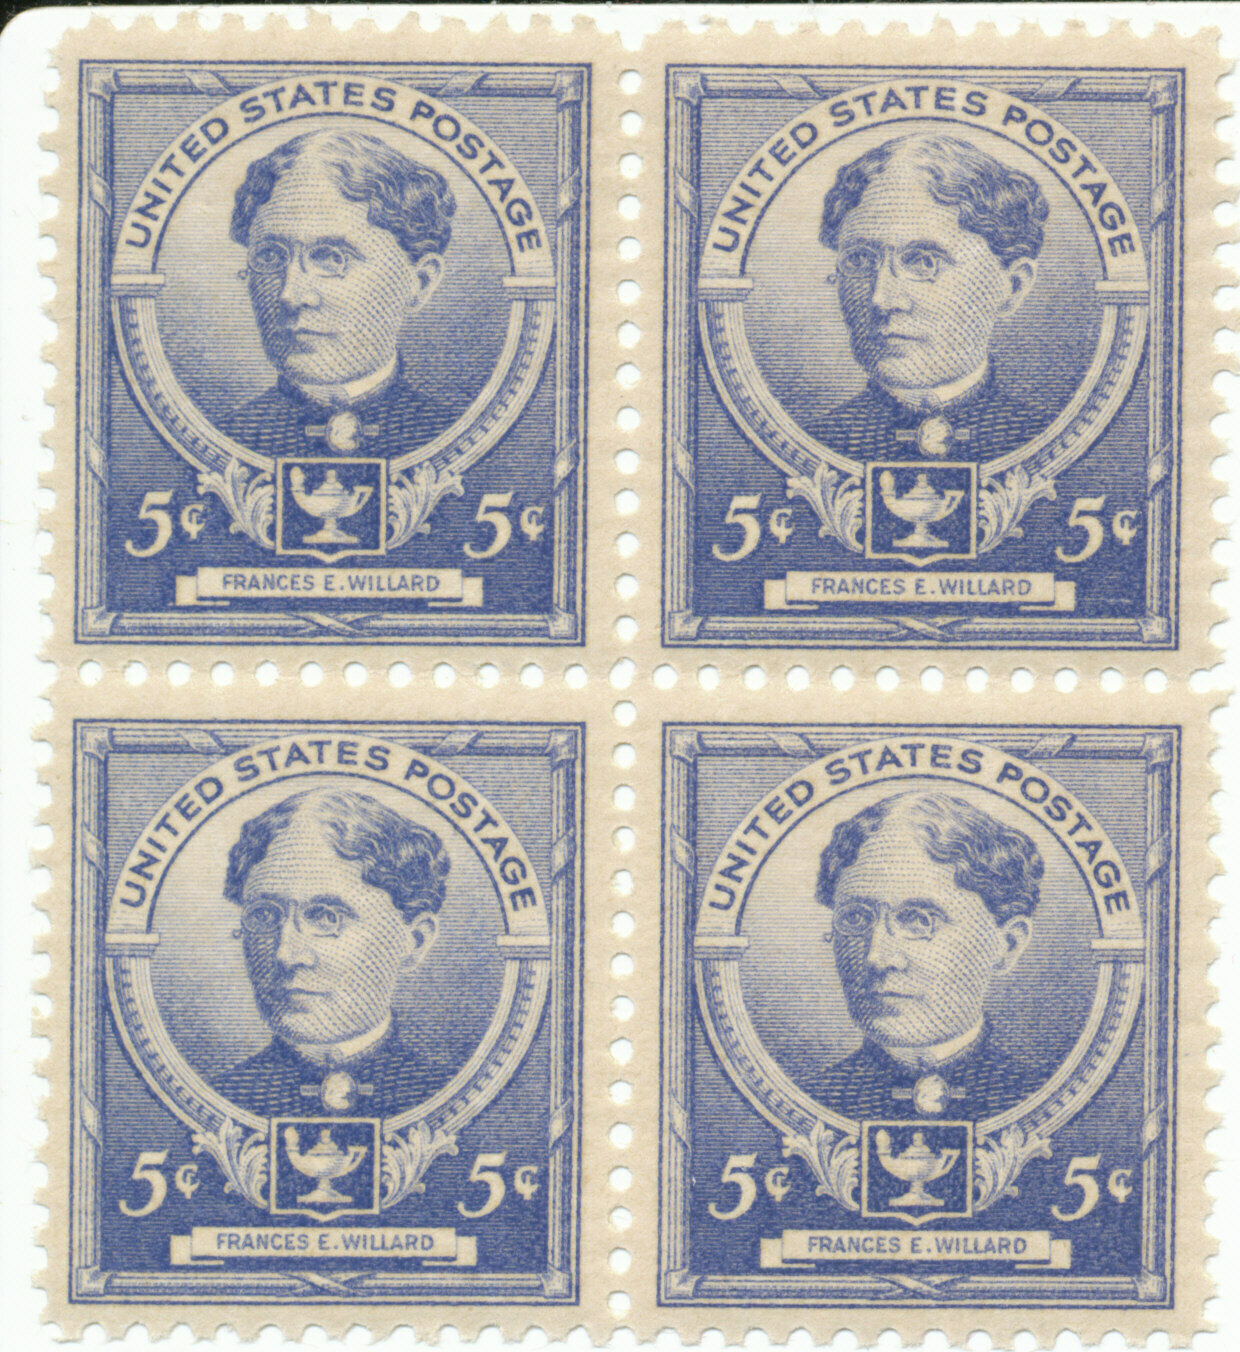 1940 Frances E Willard Block of 4 US Postage Stamps Catalog Number 872 MNH